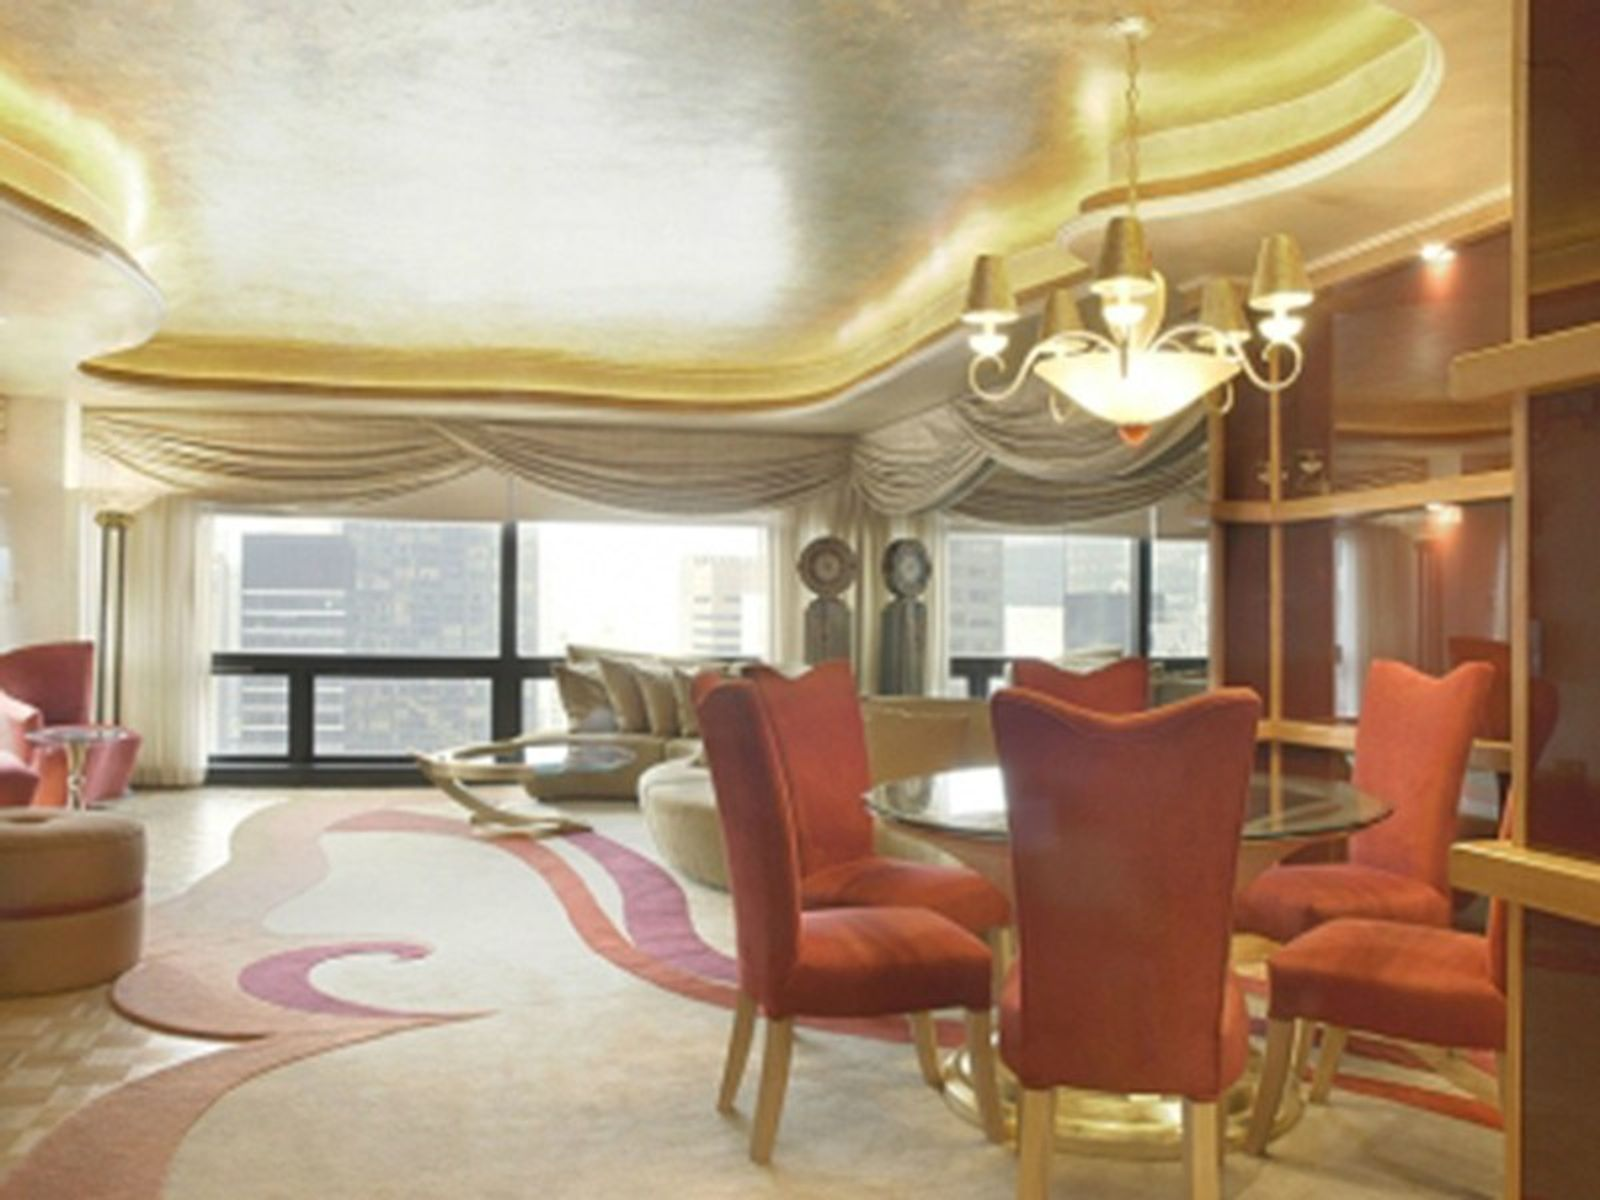 Trump Tower, 721 Fifth Avenue, New York NY Condominium - New York City Real Estate